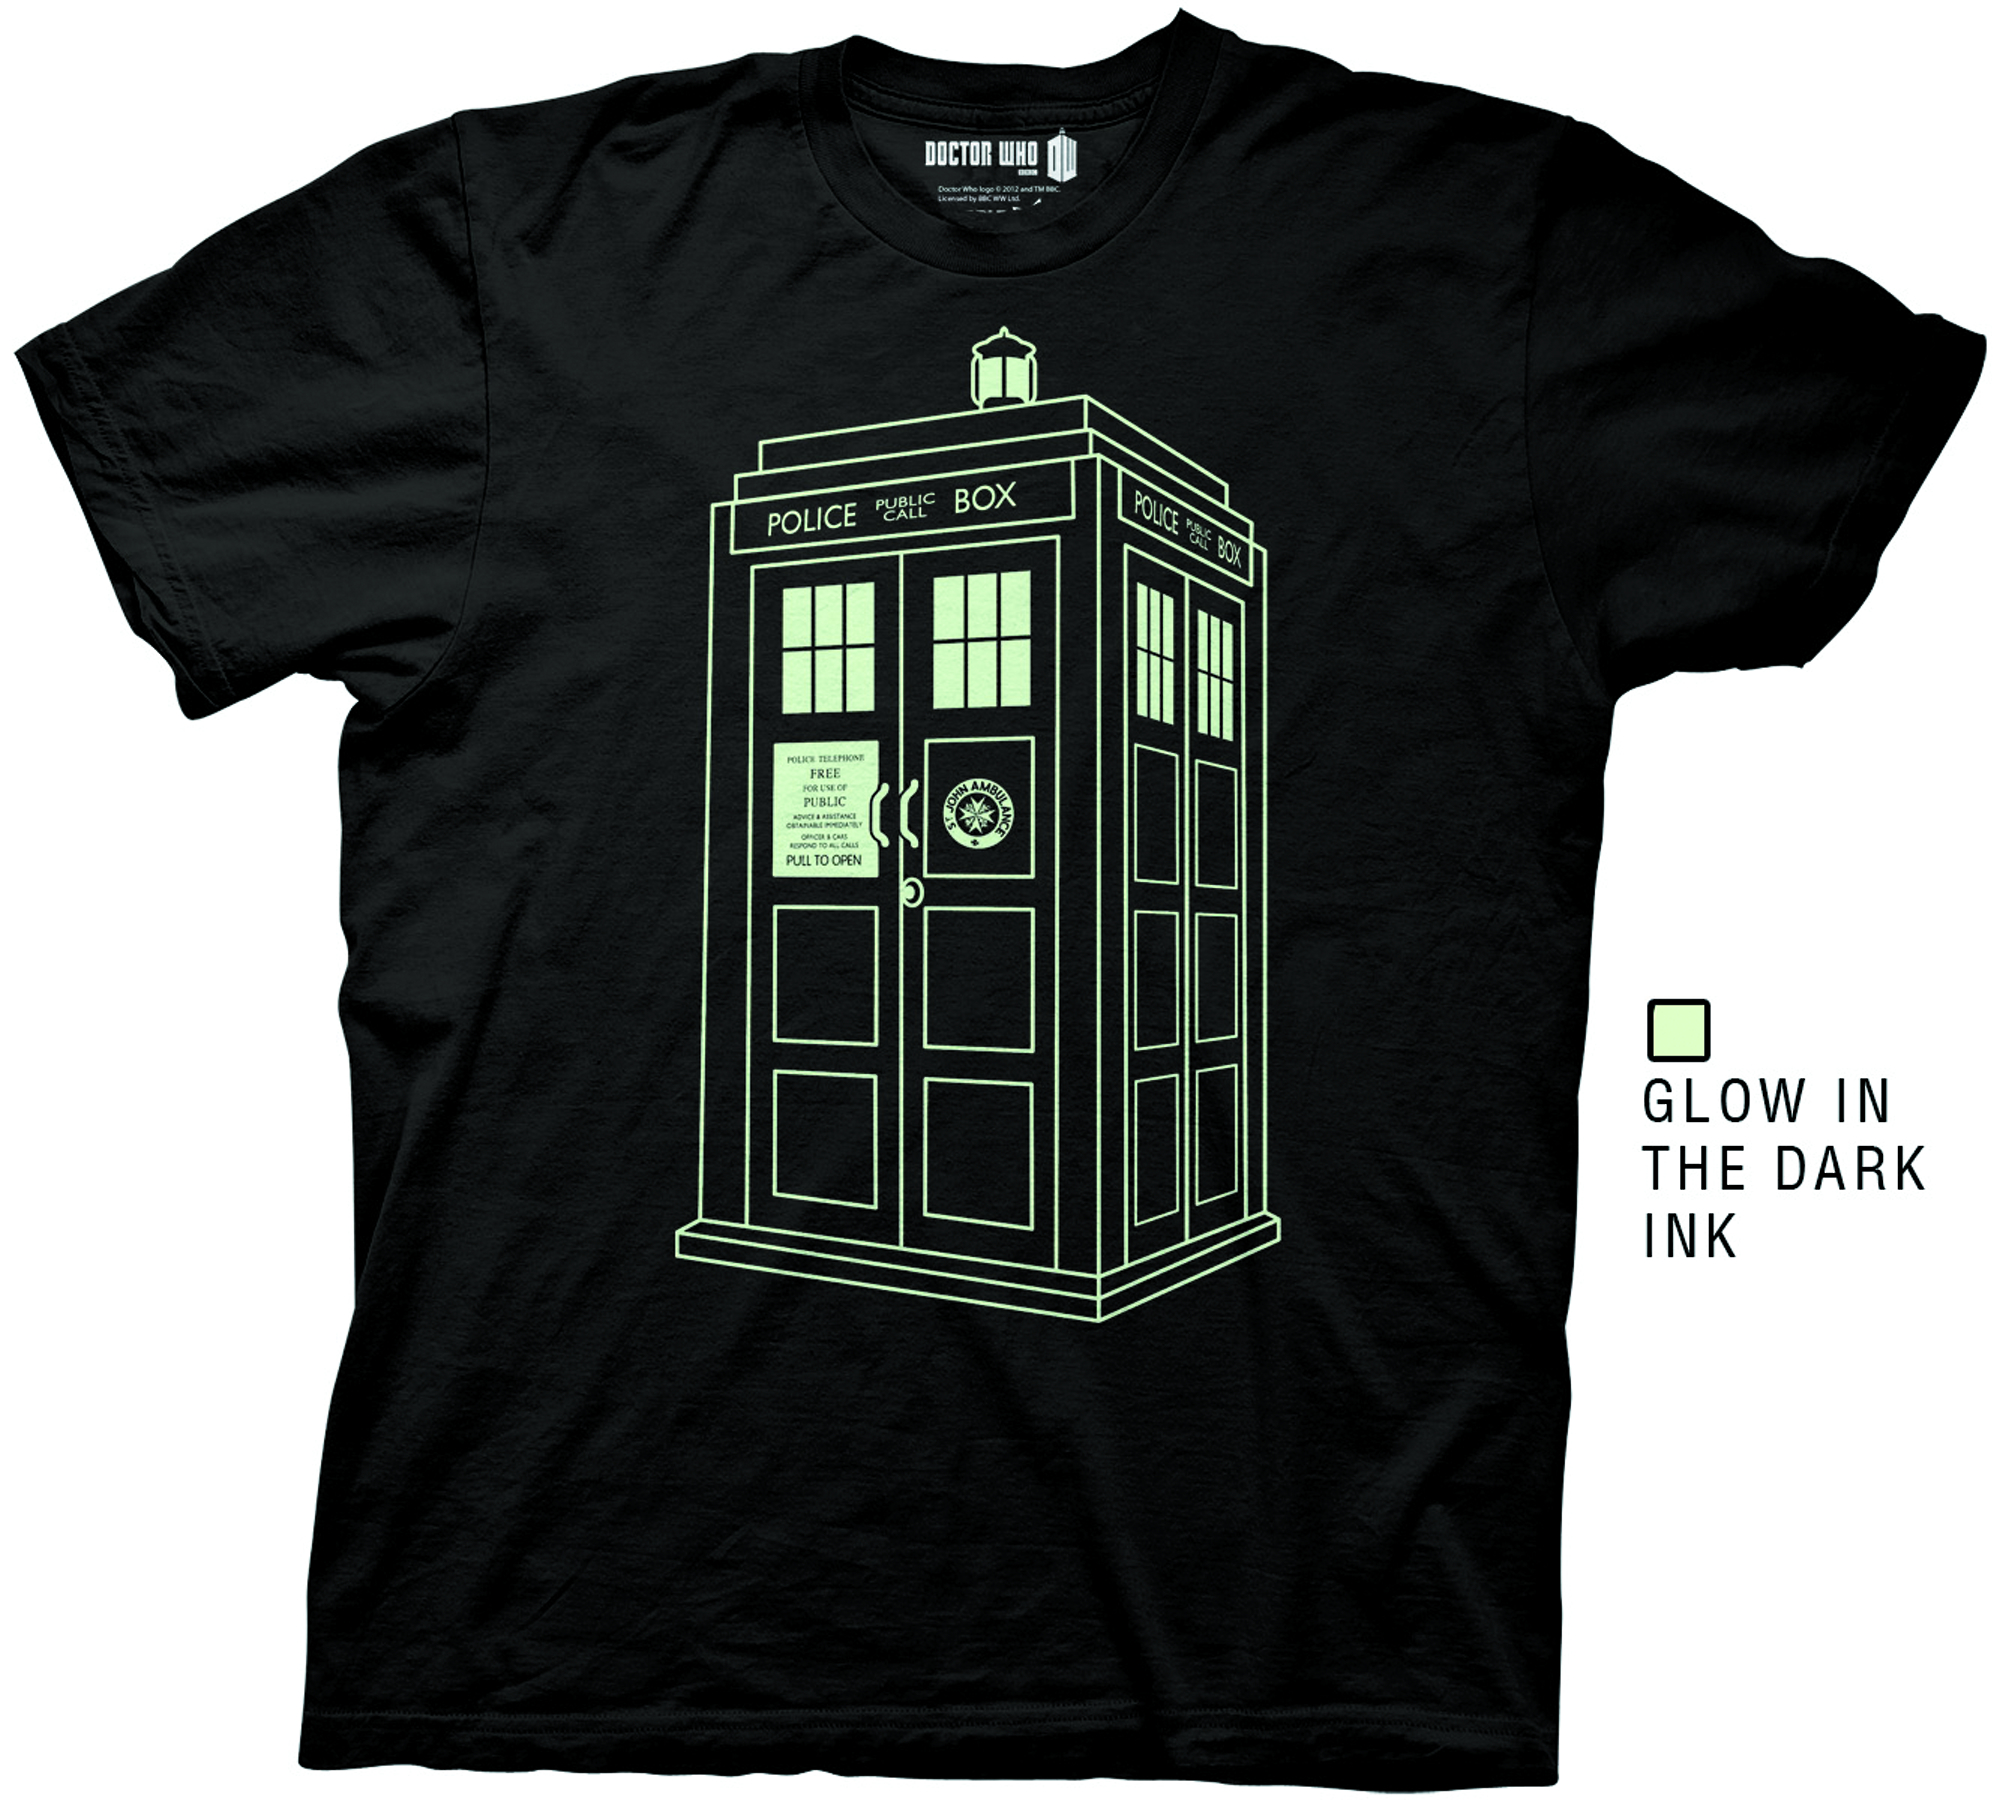 DW TARDIS OUTLINE GLOW IN THE DARK PX T/S LG